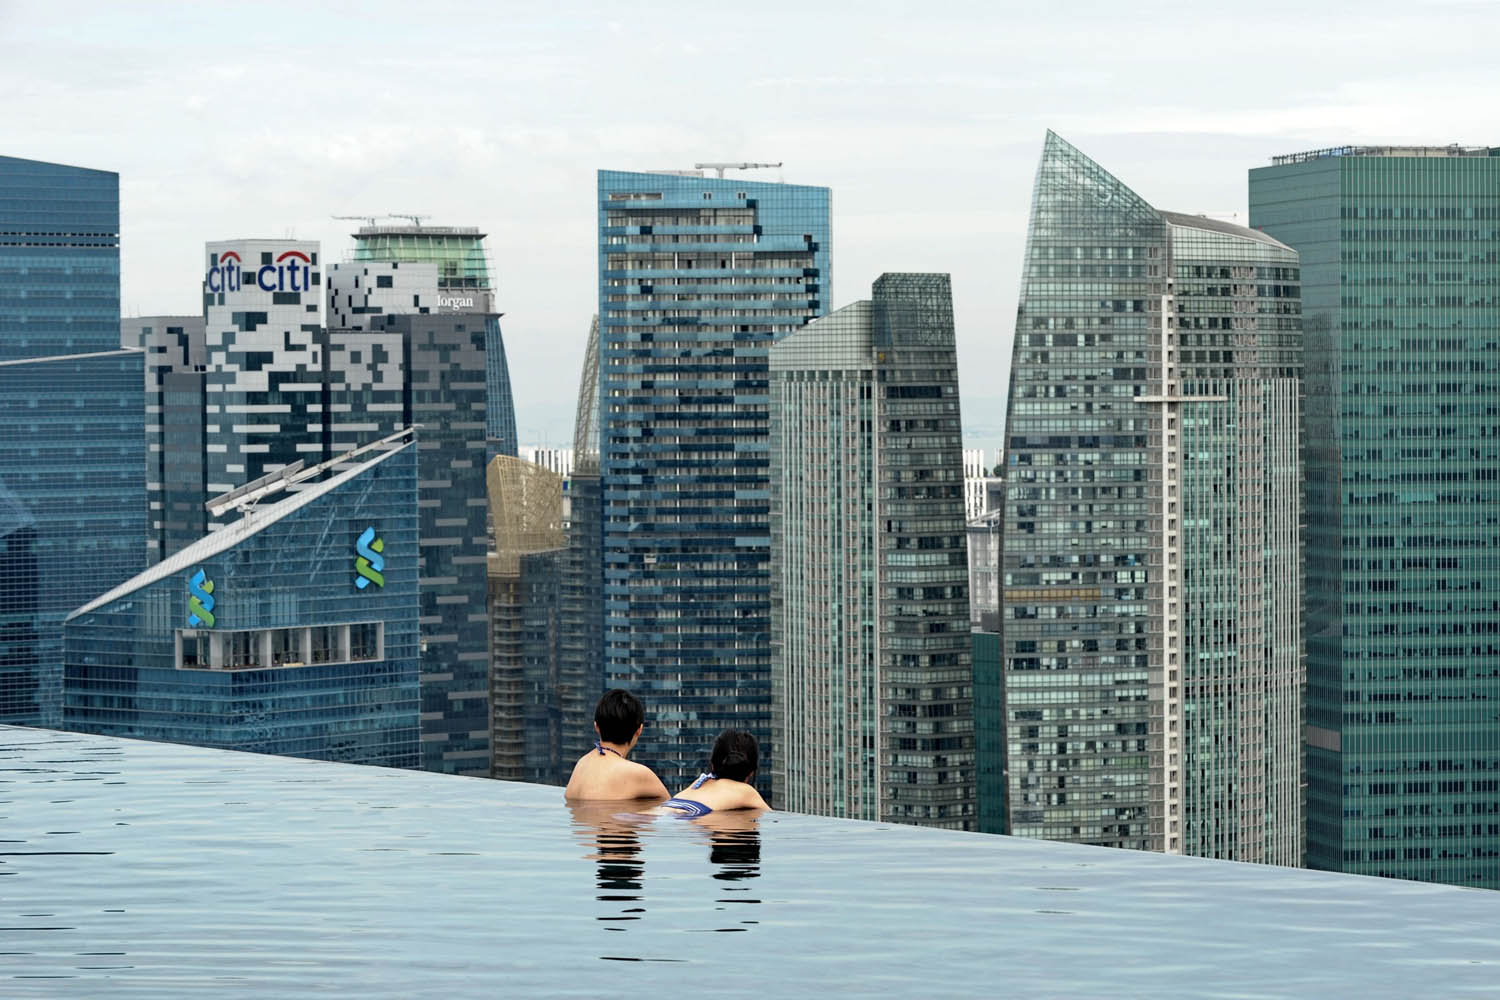 May 20, 2014. Visitors look at a view of the city skyline from the rooftop pool of the Marina Bay Sands resort hotel in Singapore.